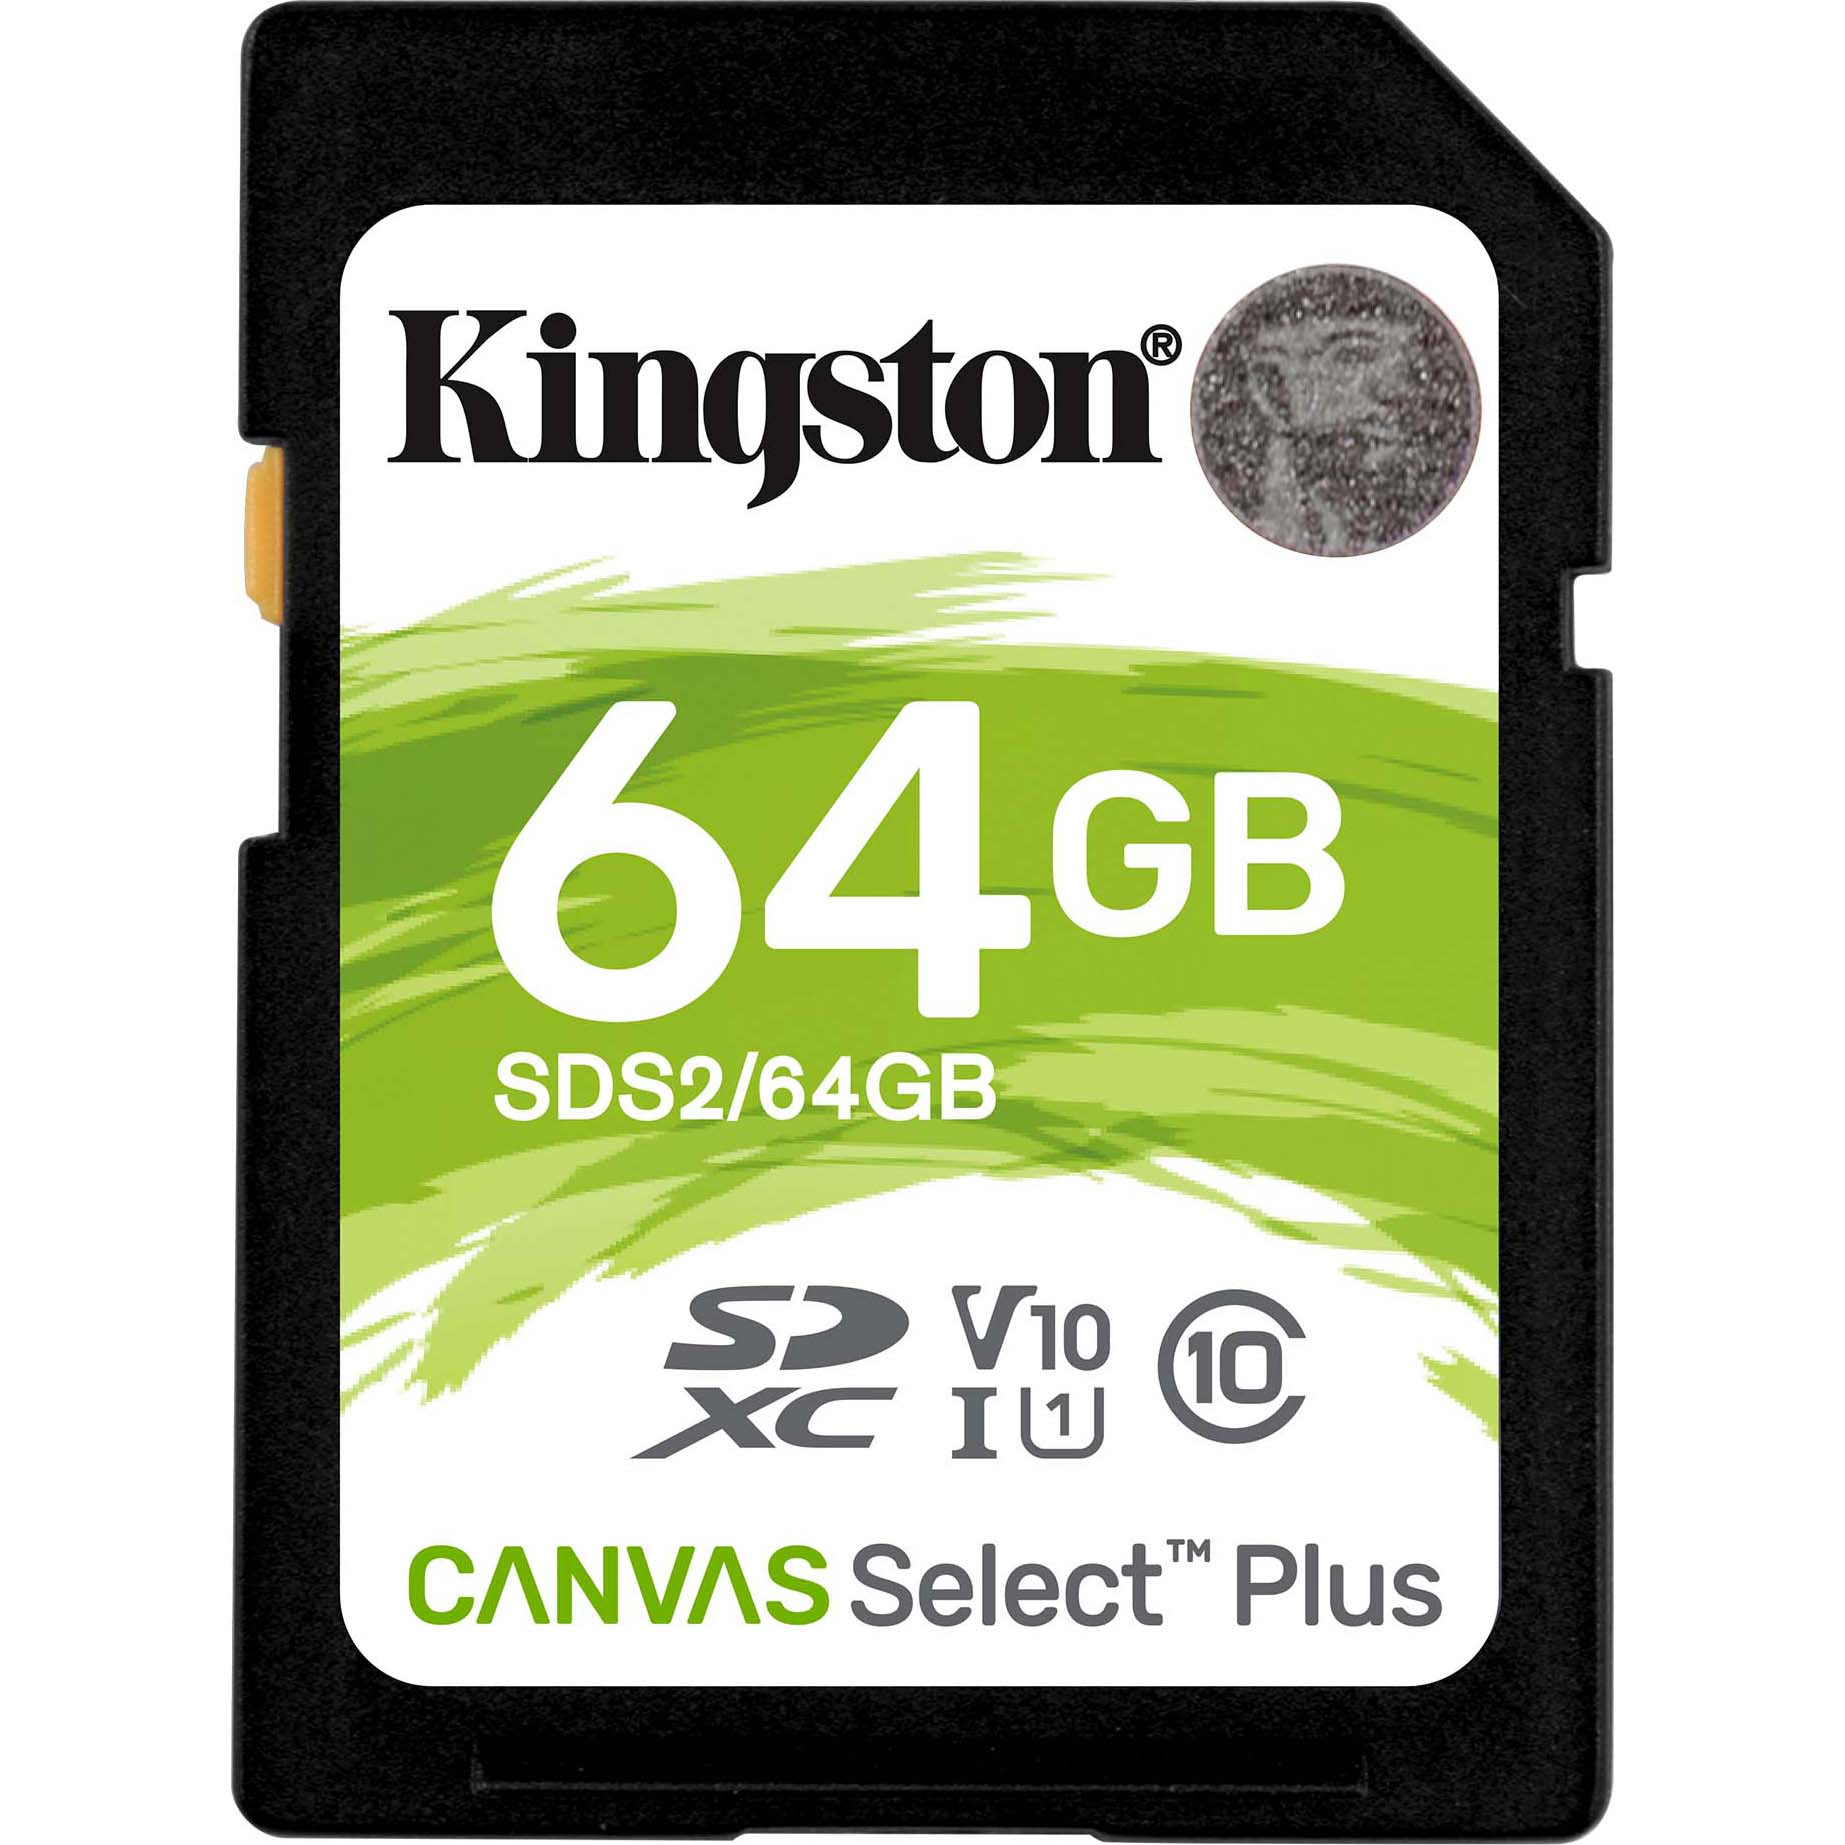 Fotografie Card de memorie Kingston SDXC Canvas Select Plus 100R, 64GB, Class 10, UHS-I U1 V10